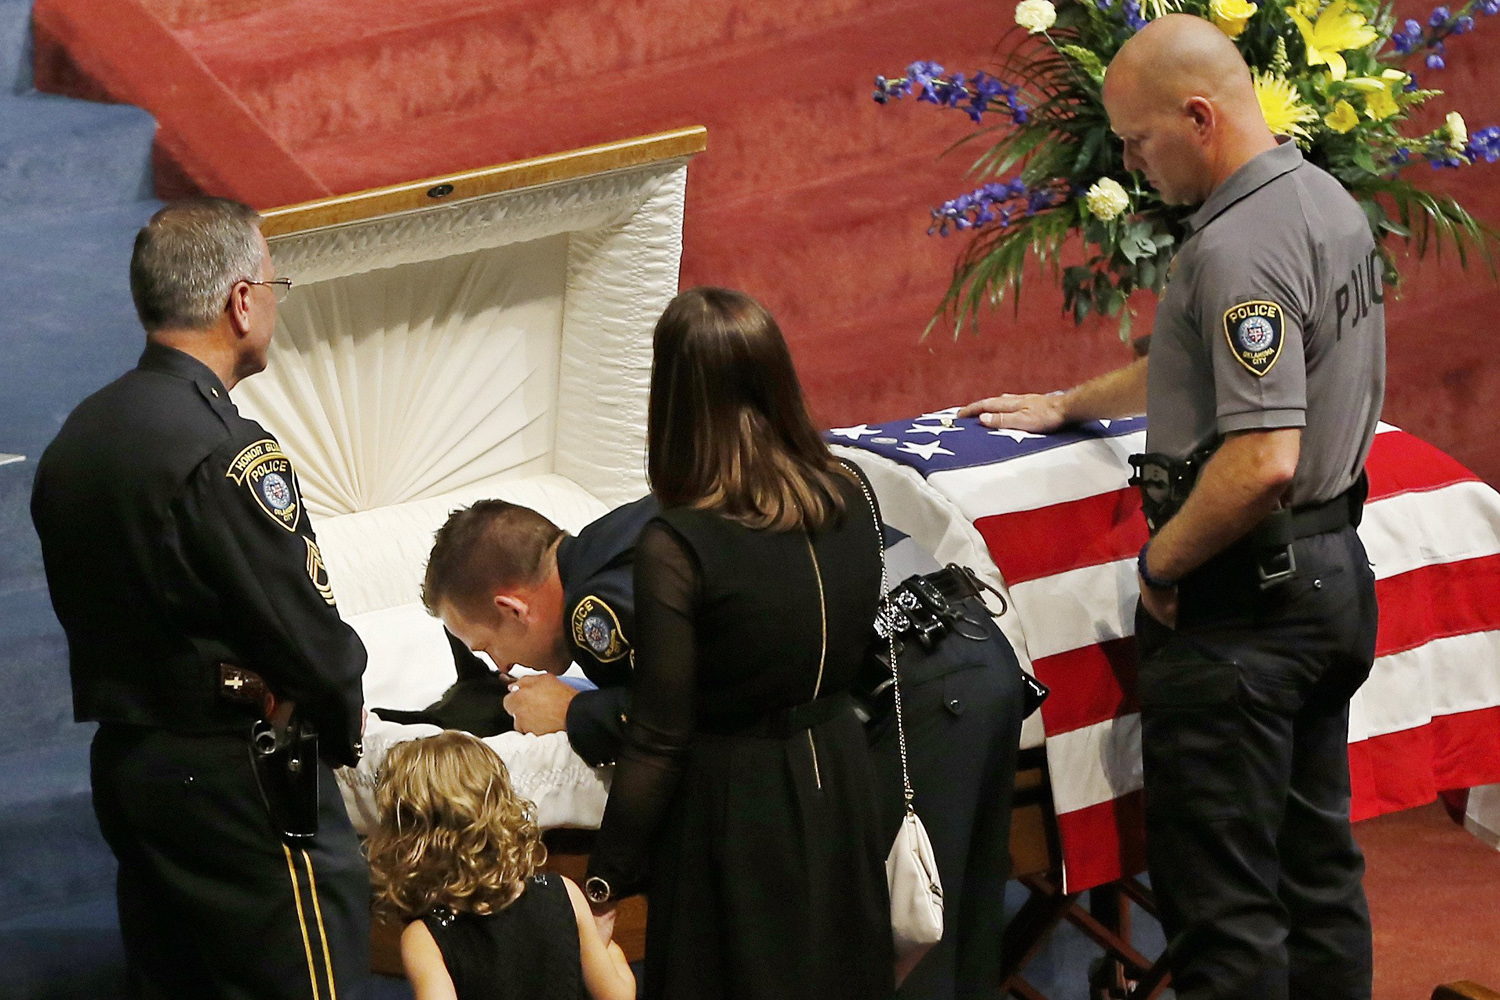 Aug. 28, 2014. Oklahoma City police officer Sgt. Ryan Stark, center, leans over the casket of his canine partner, K-9 Kye, following funeral services for the dog in Oklahoma City.